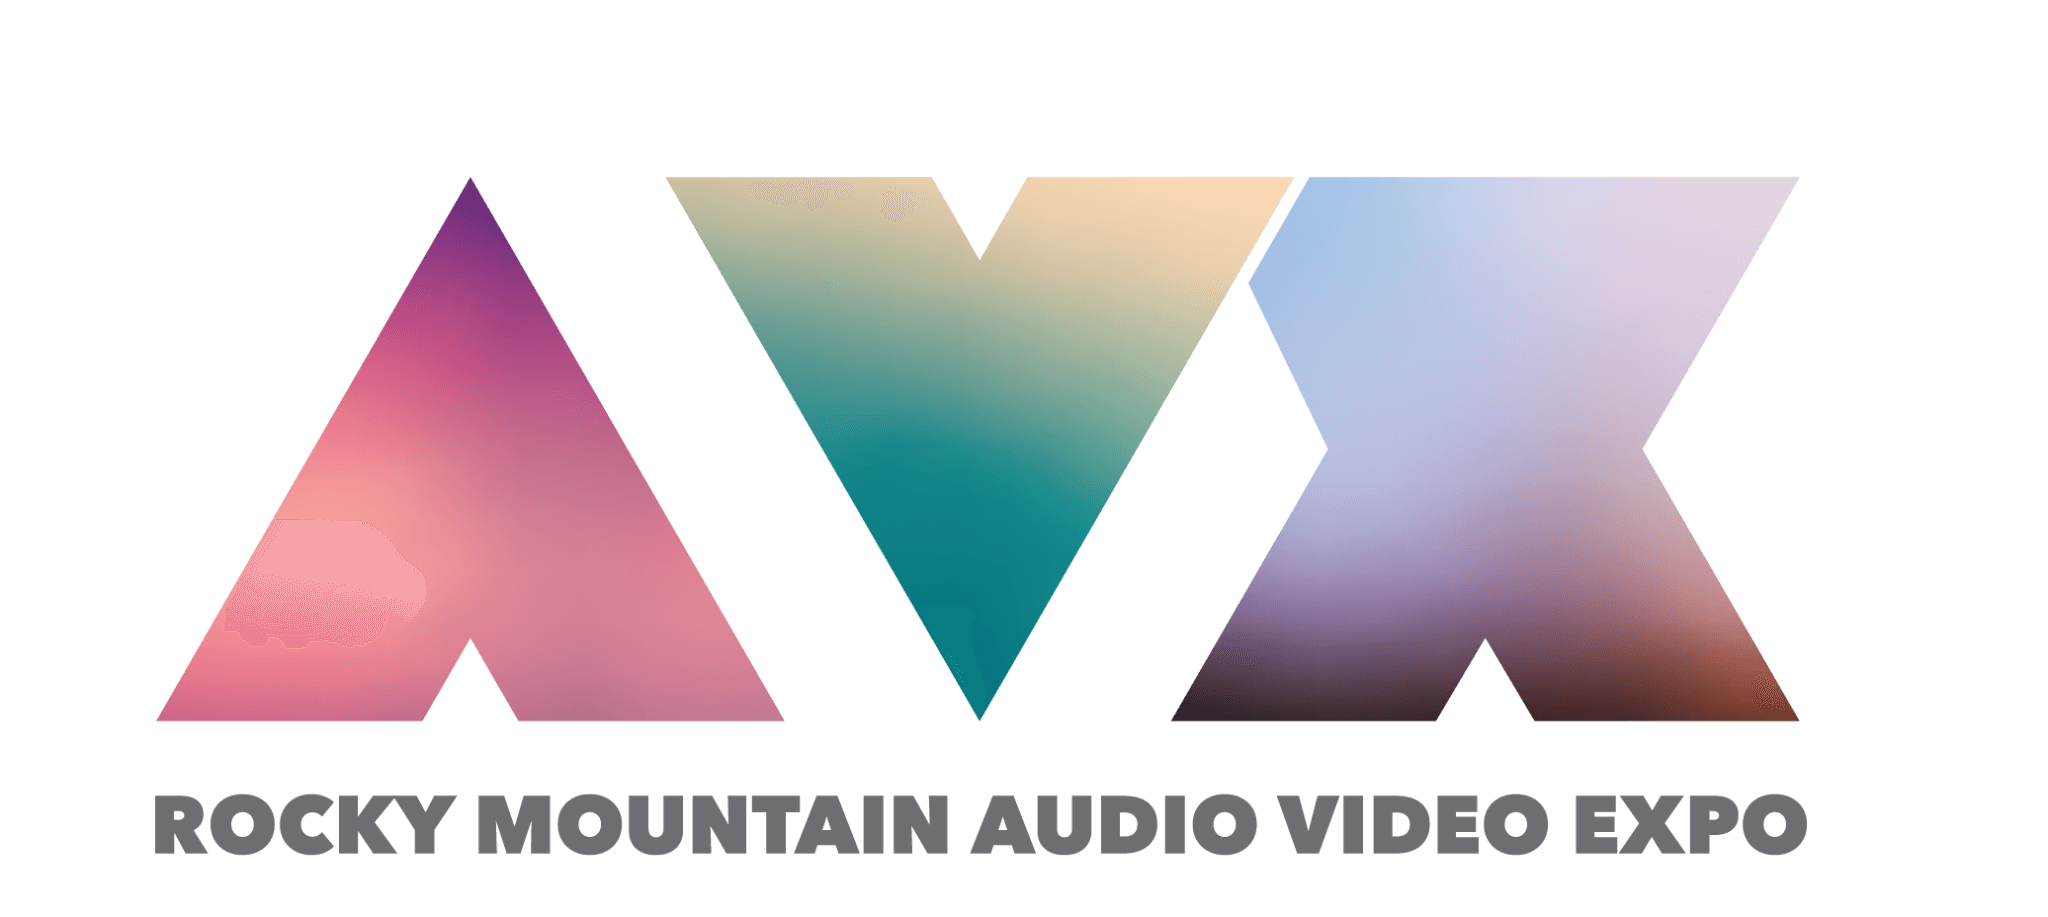 Rocky Mountain AV Expo 2019